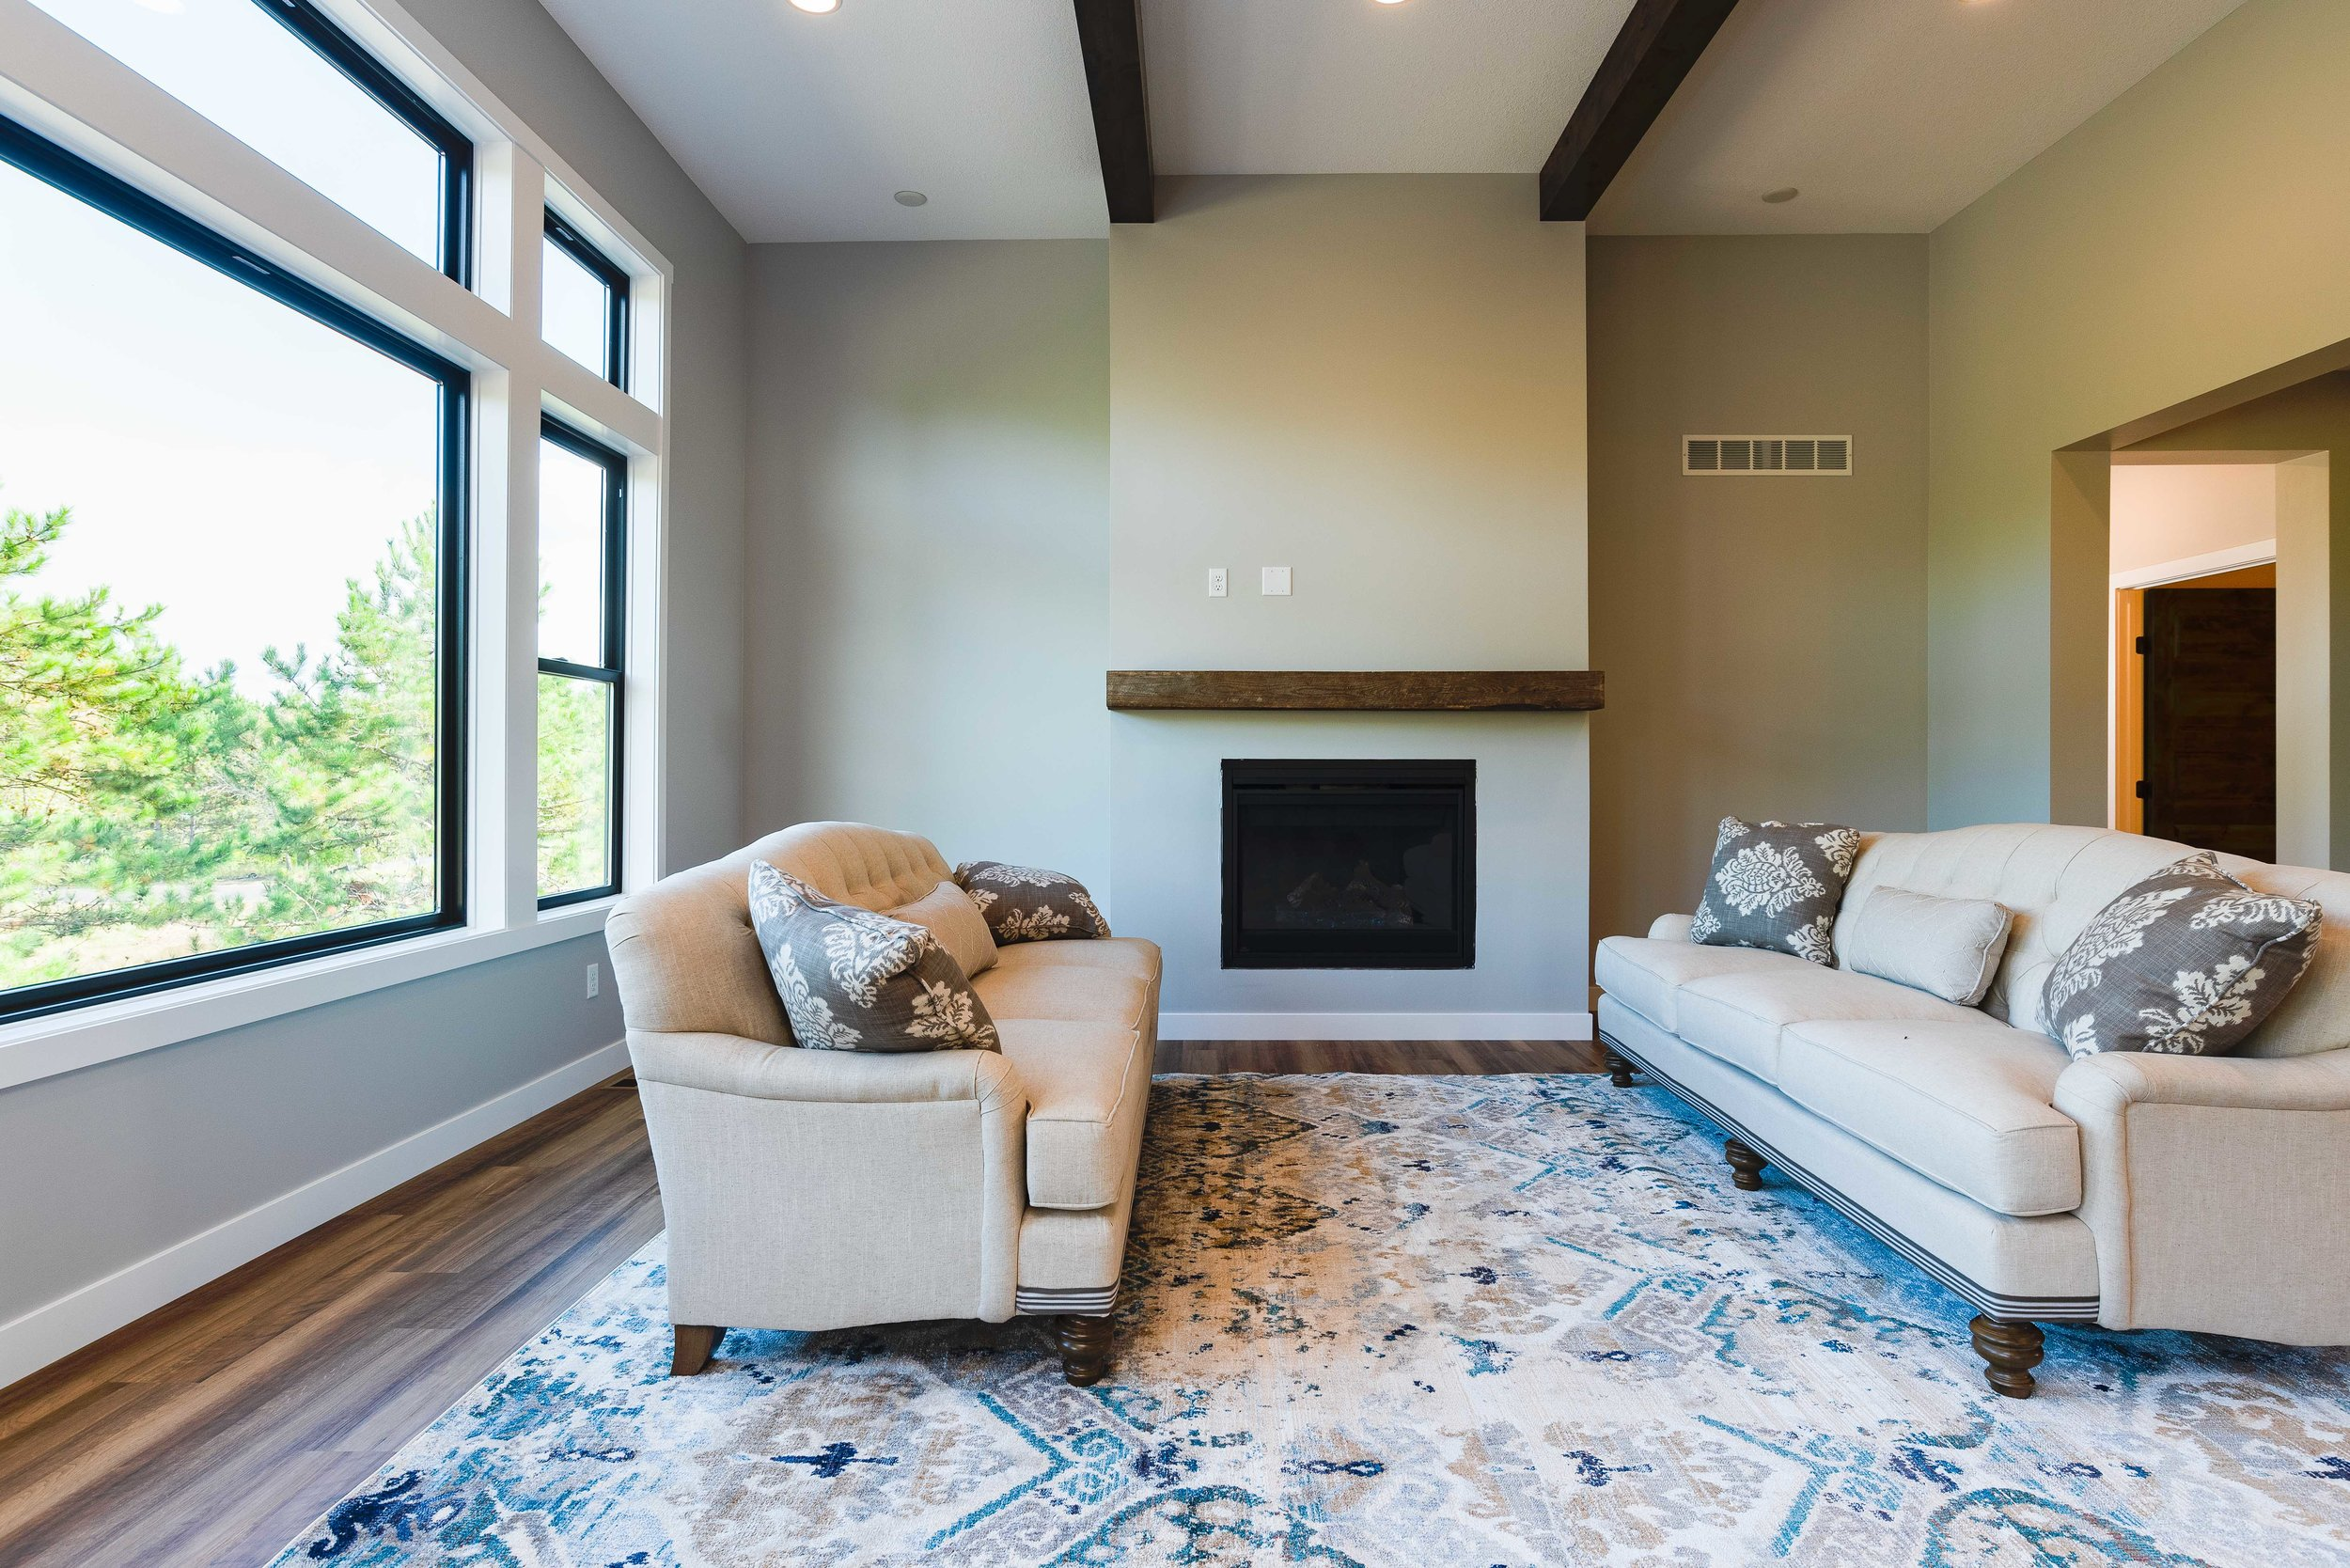 This living room features a simple, yet beautiful mantle over the fireplace as well as big windows to let in plenty of light!